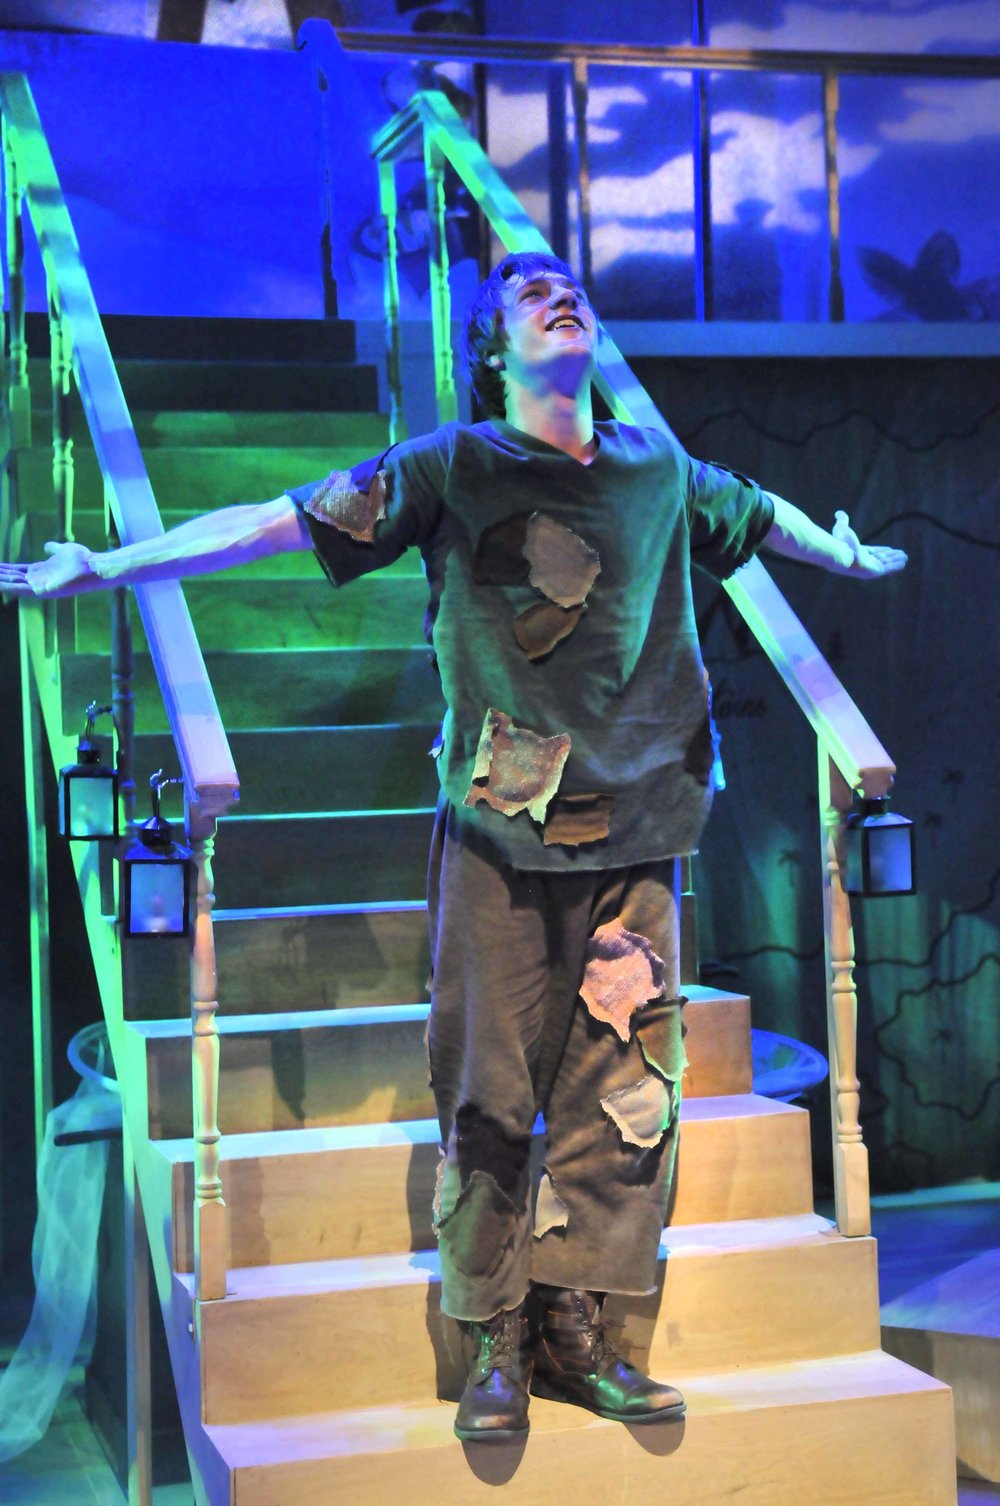 Peter Pan - Peter on stairs.jpg